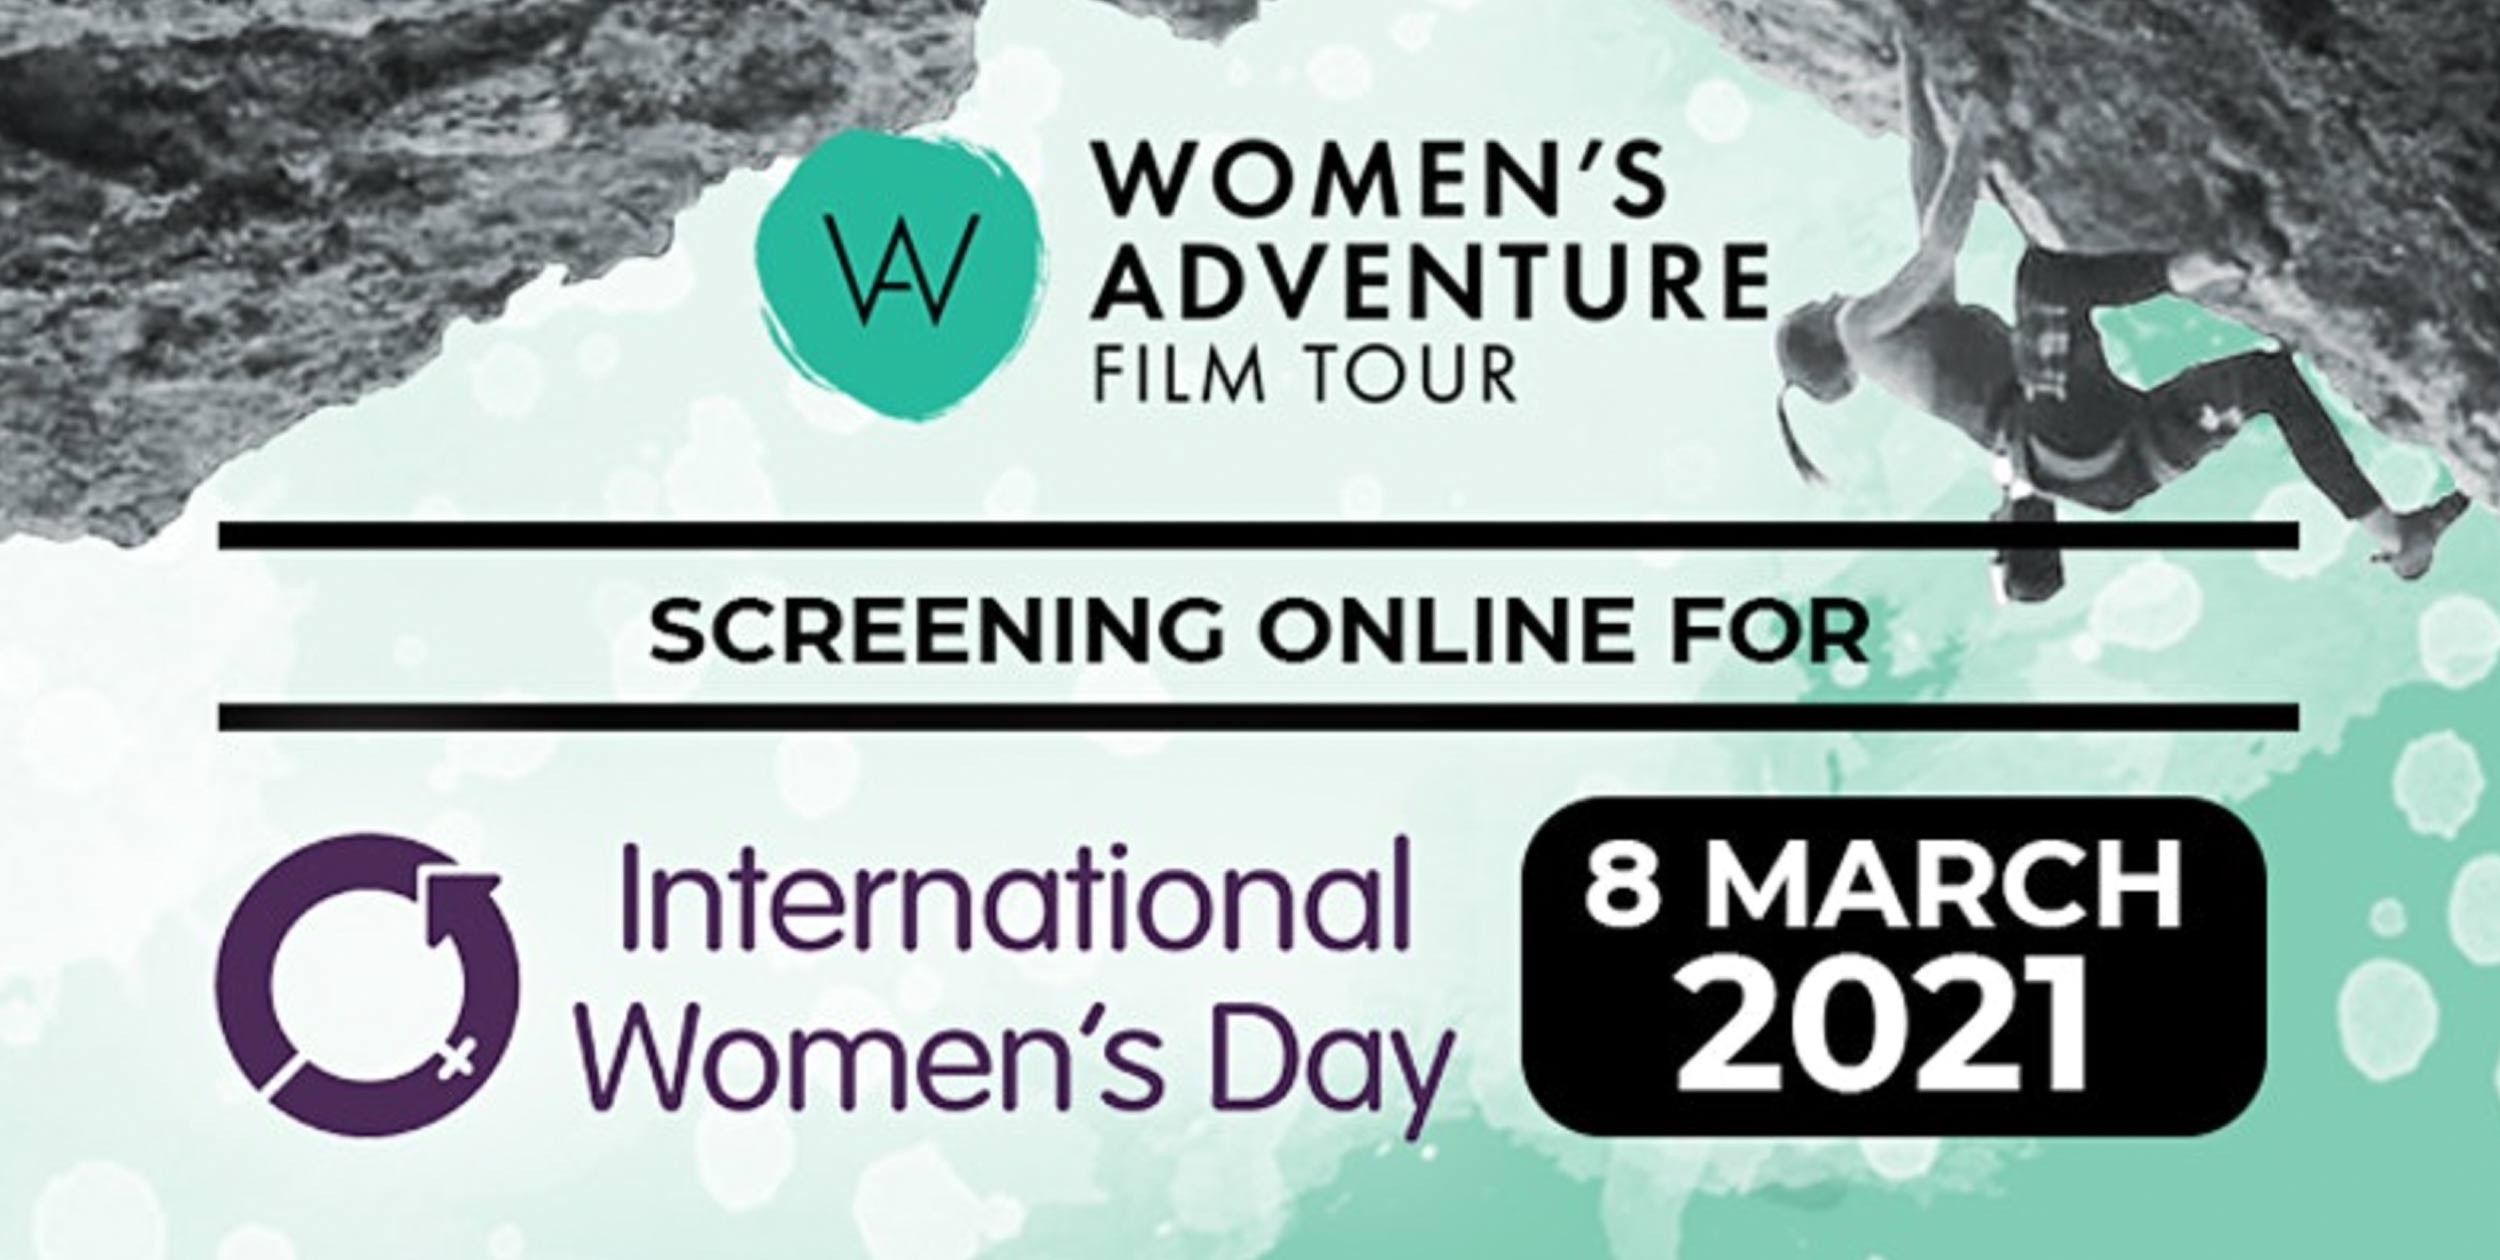 Women's Adventure Film Tour 2021